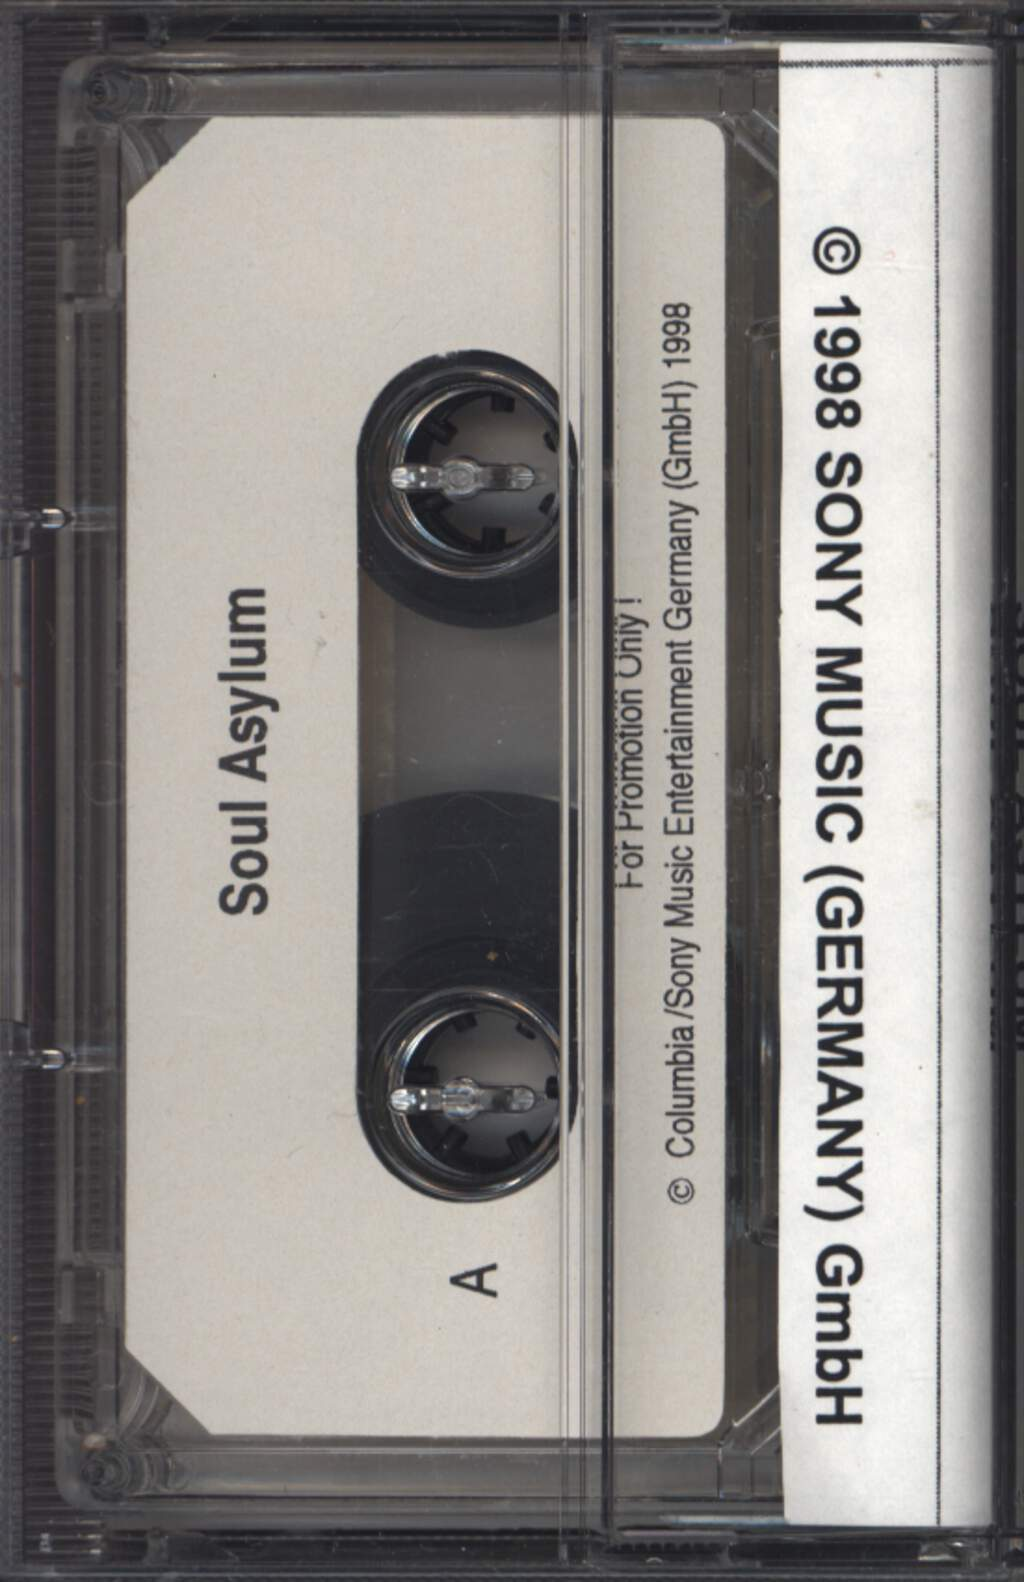 Soul Asylum: Candy From A Stranger, Compact Cassette